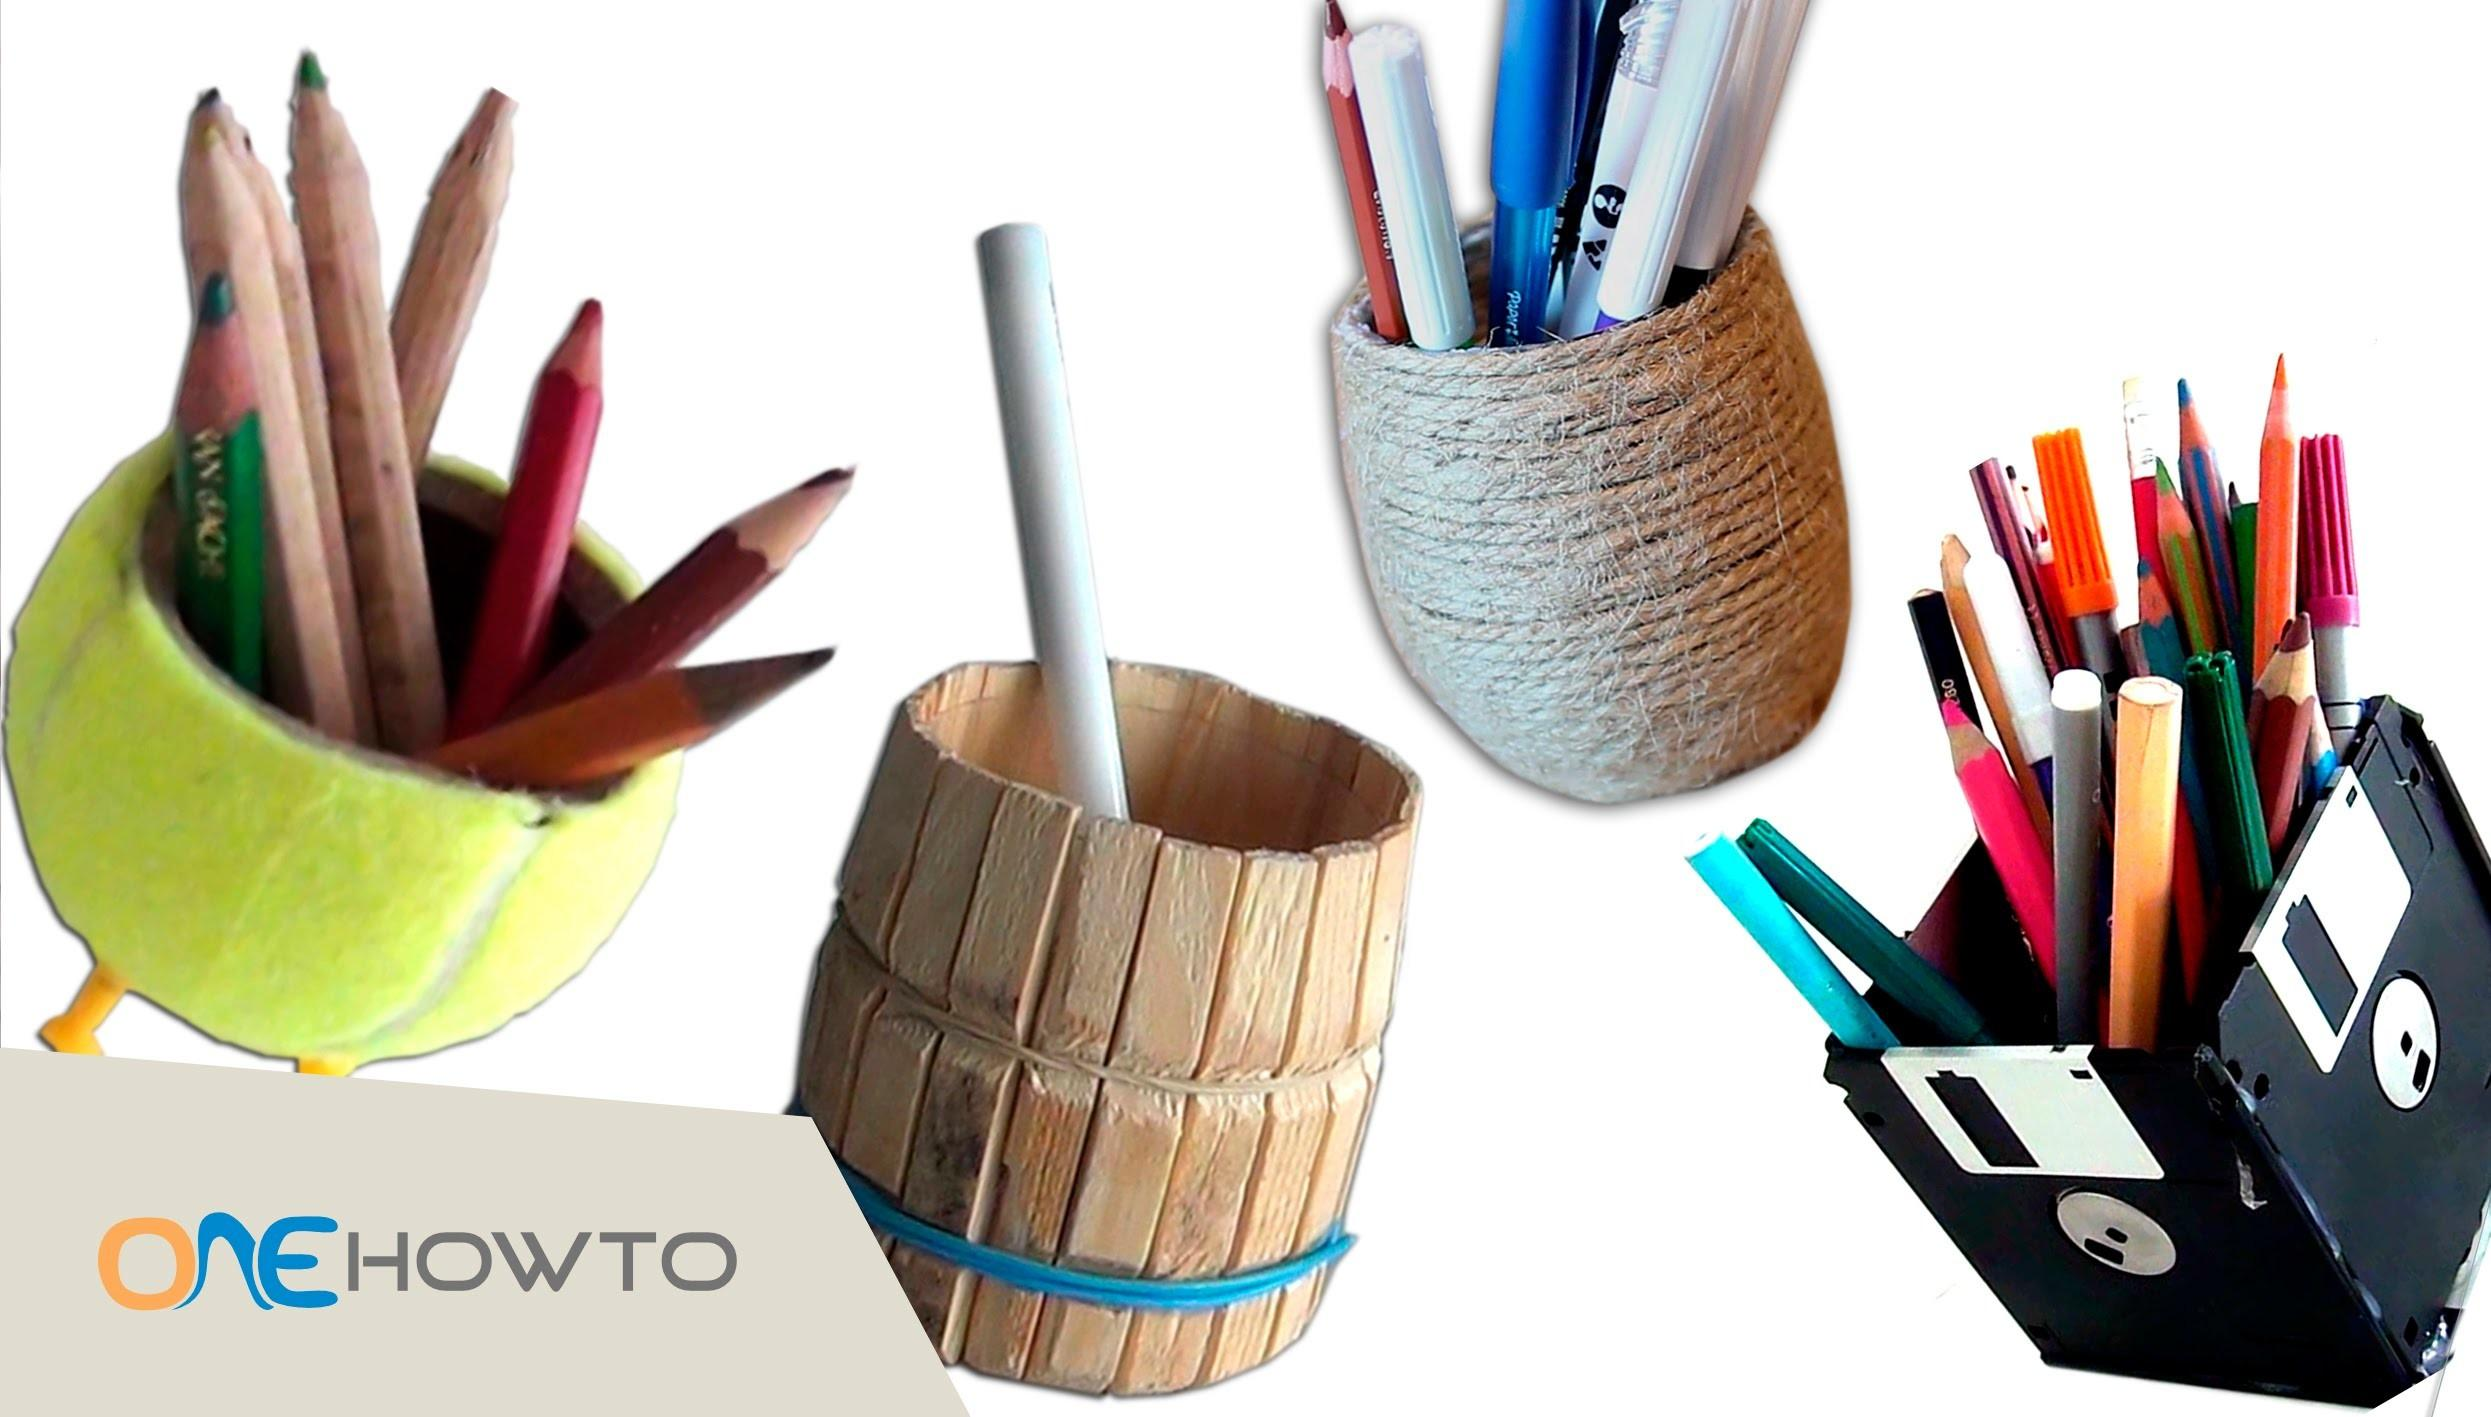 Diy Pencil Holders Crafts Waste Material